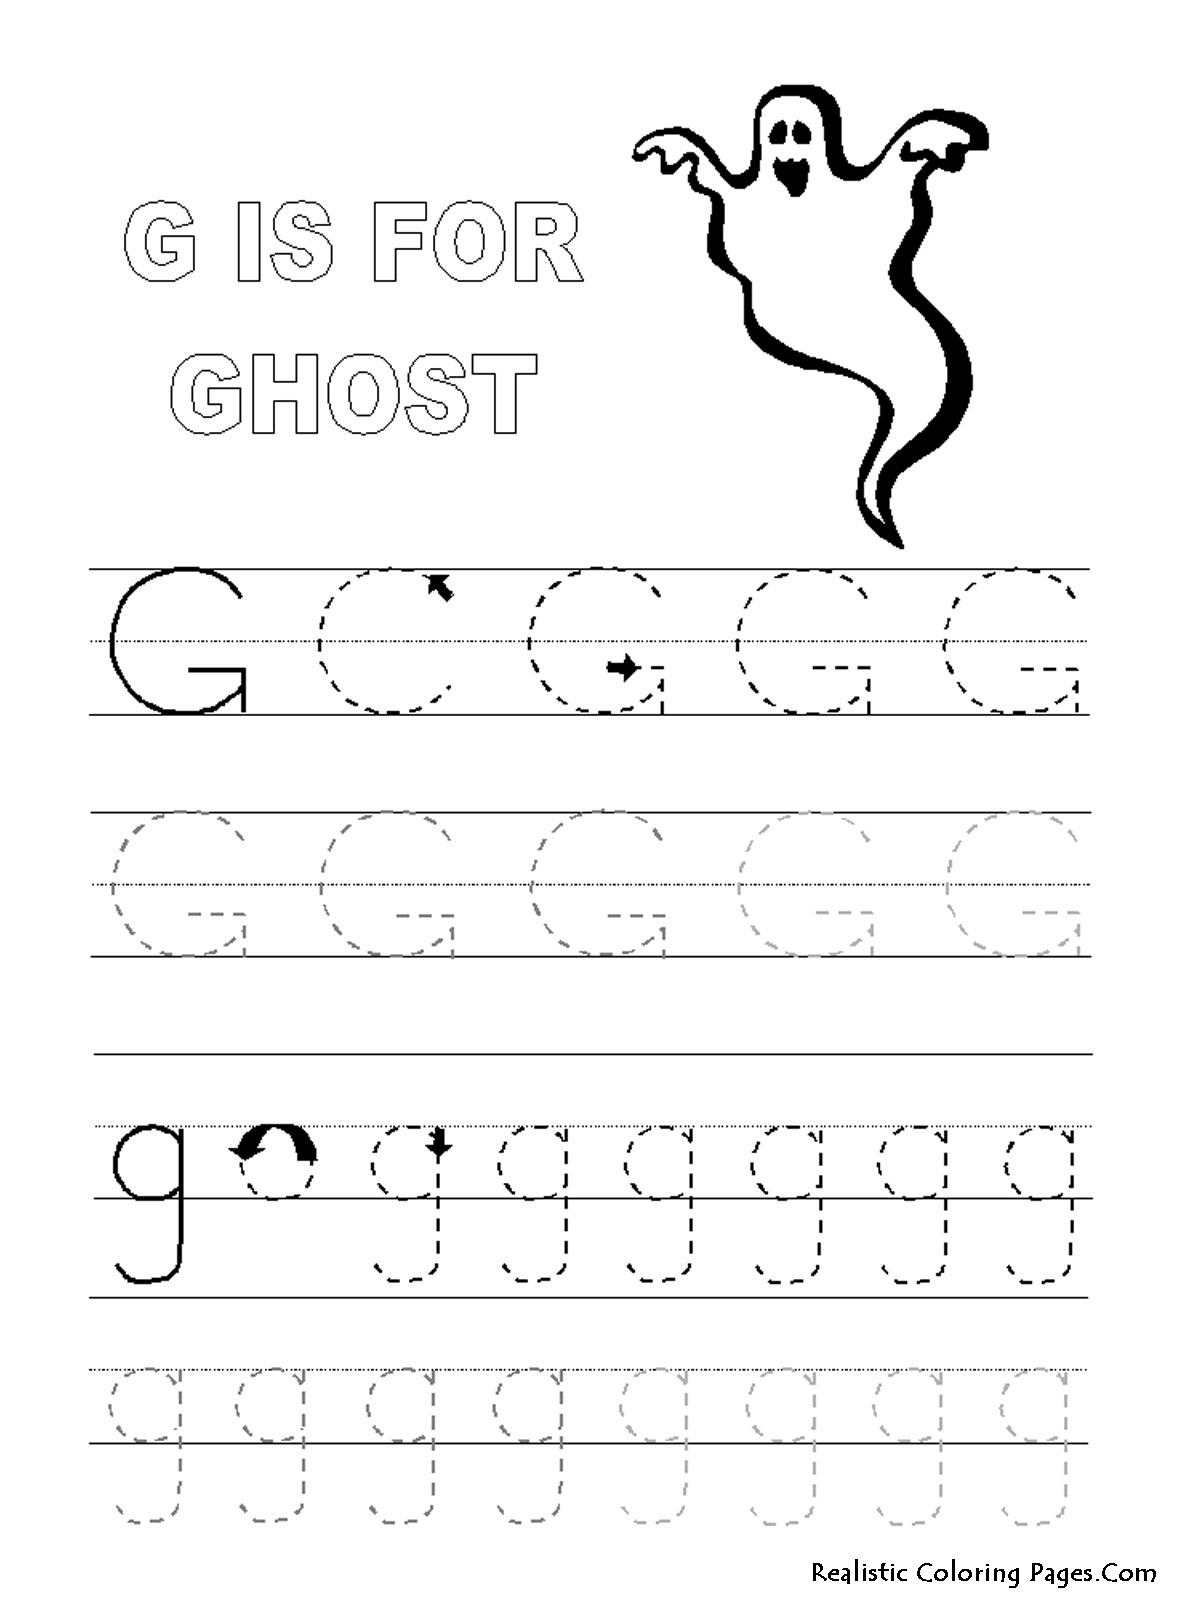 Free Worksheet Letter G Worksheets letter g ghost coloring pages google twit letters alphabet reaic